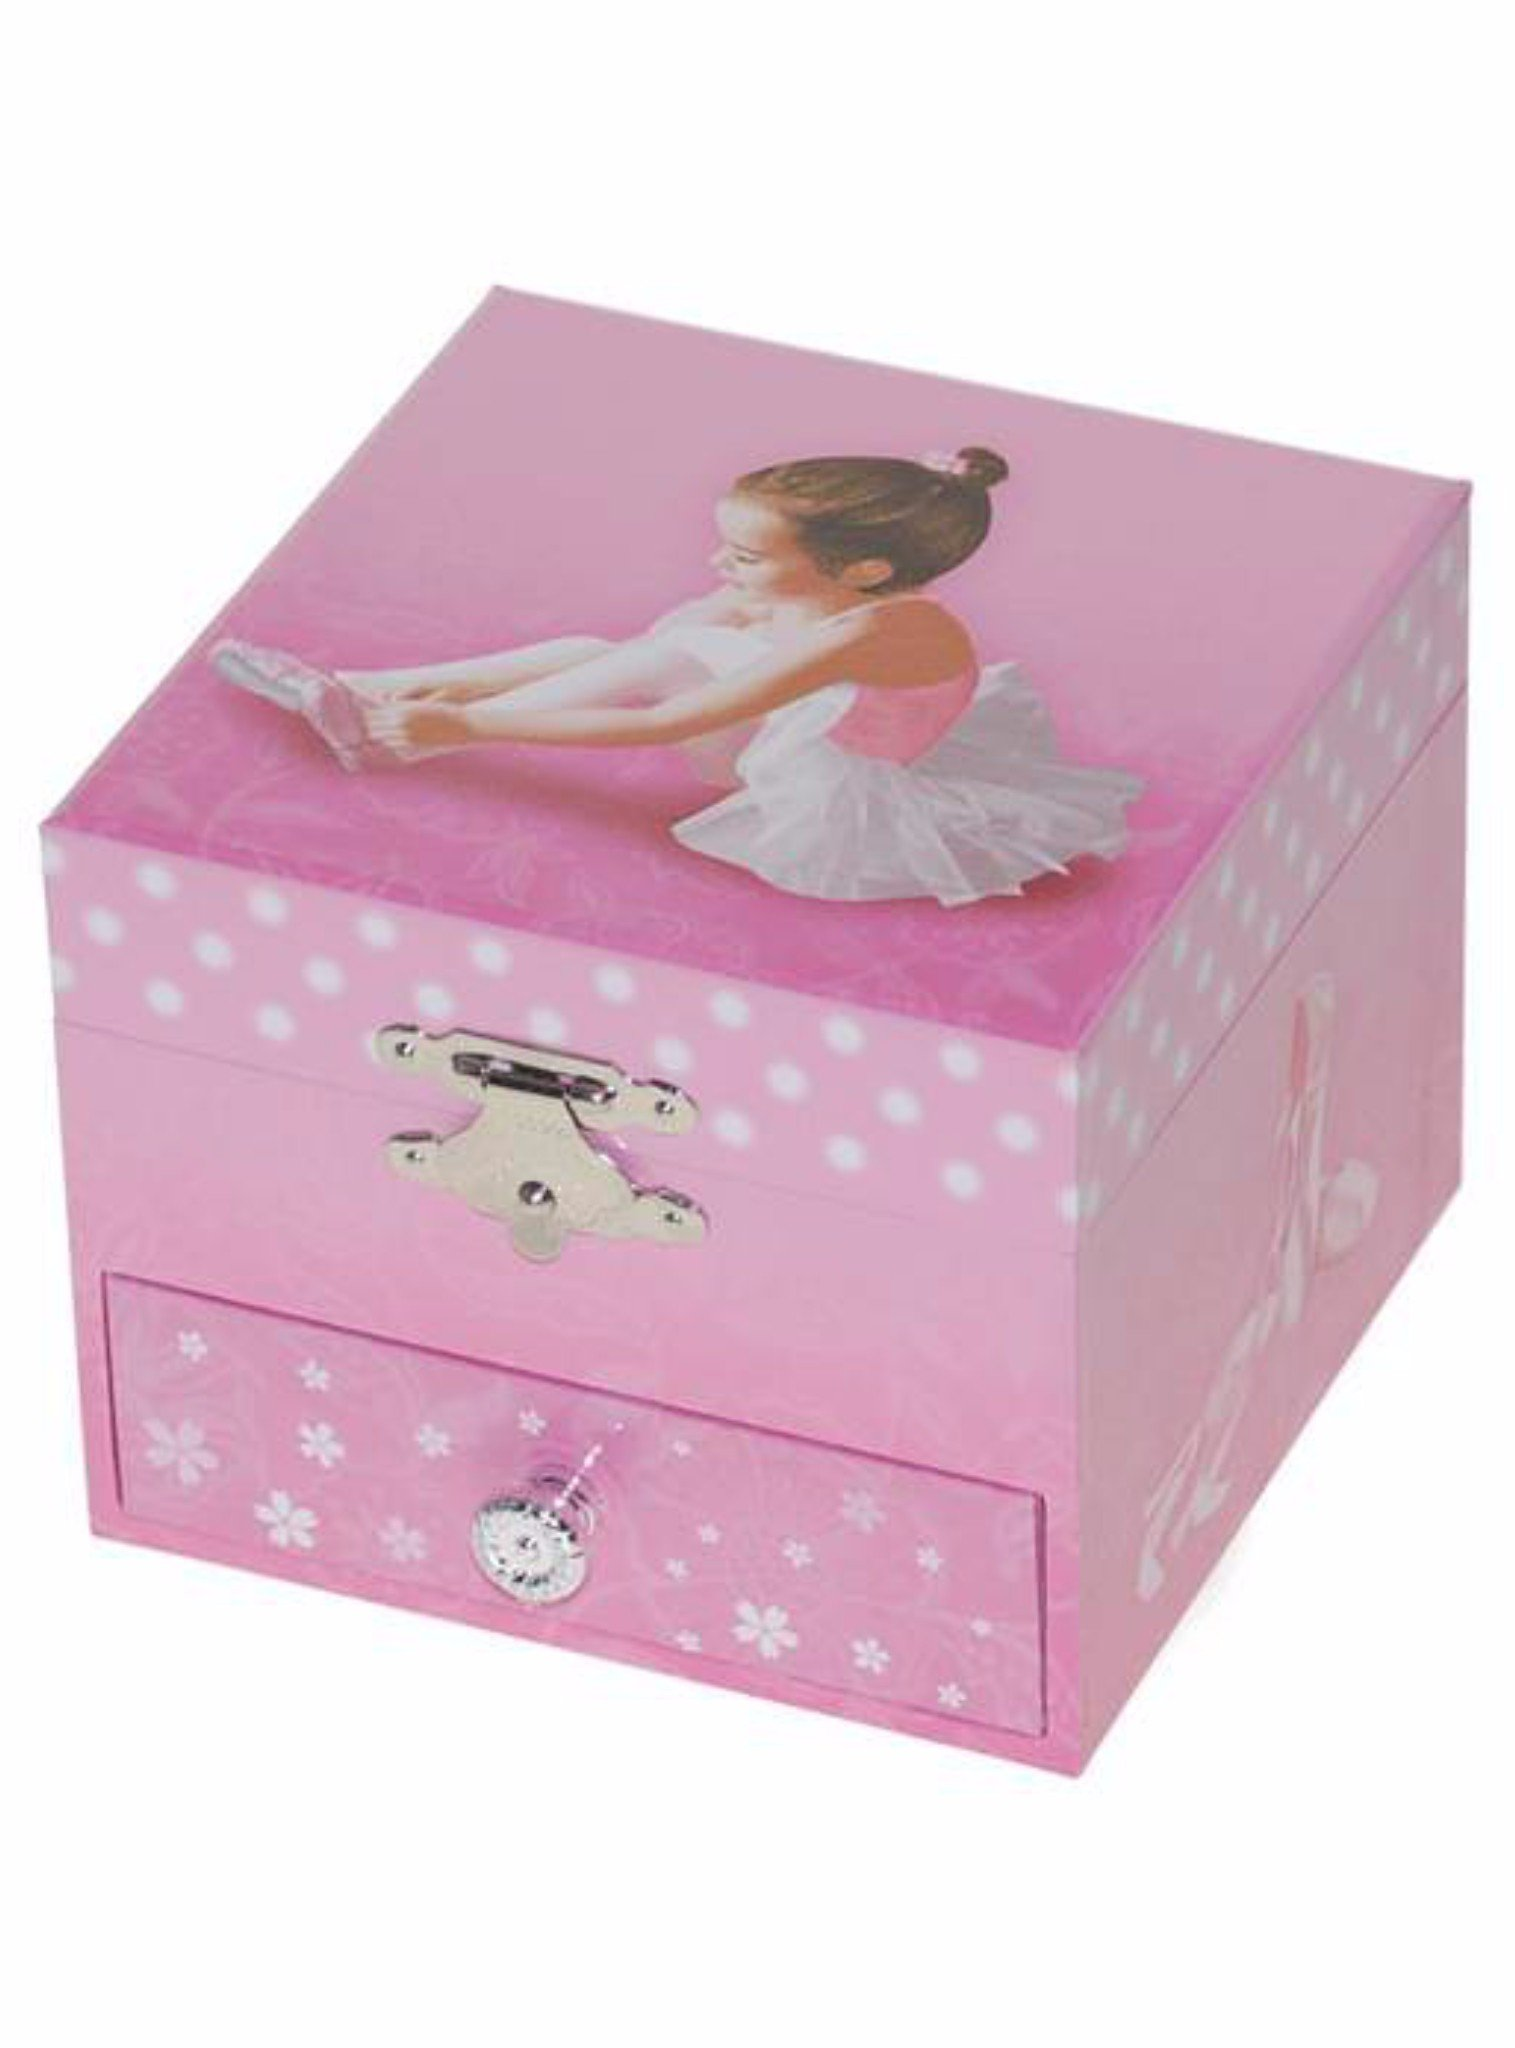 Ballerina Ballet Dancer Musical Jewellery Box — The Jewel Shop